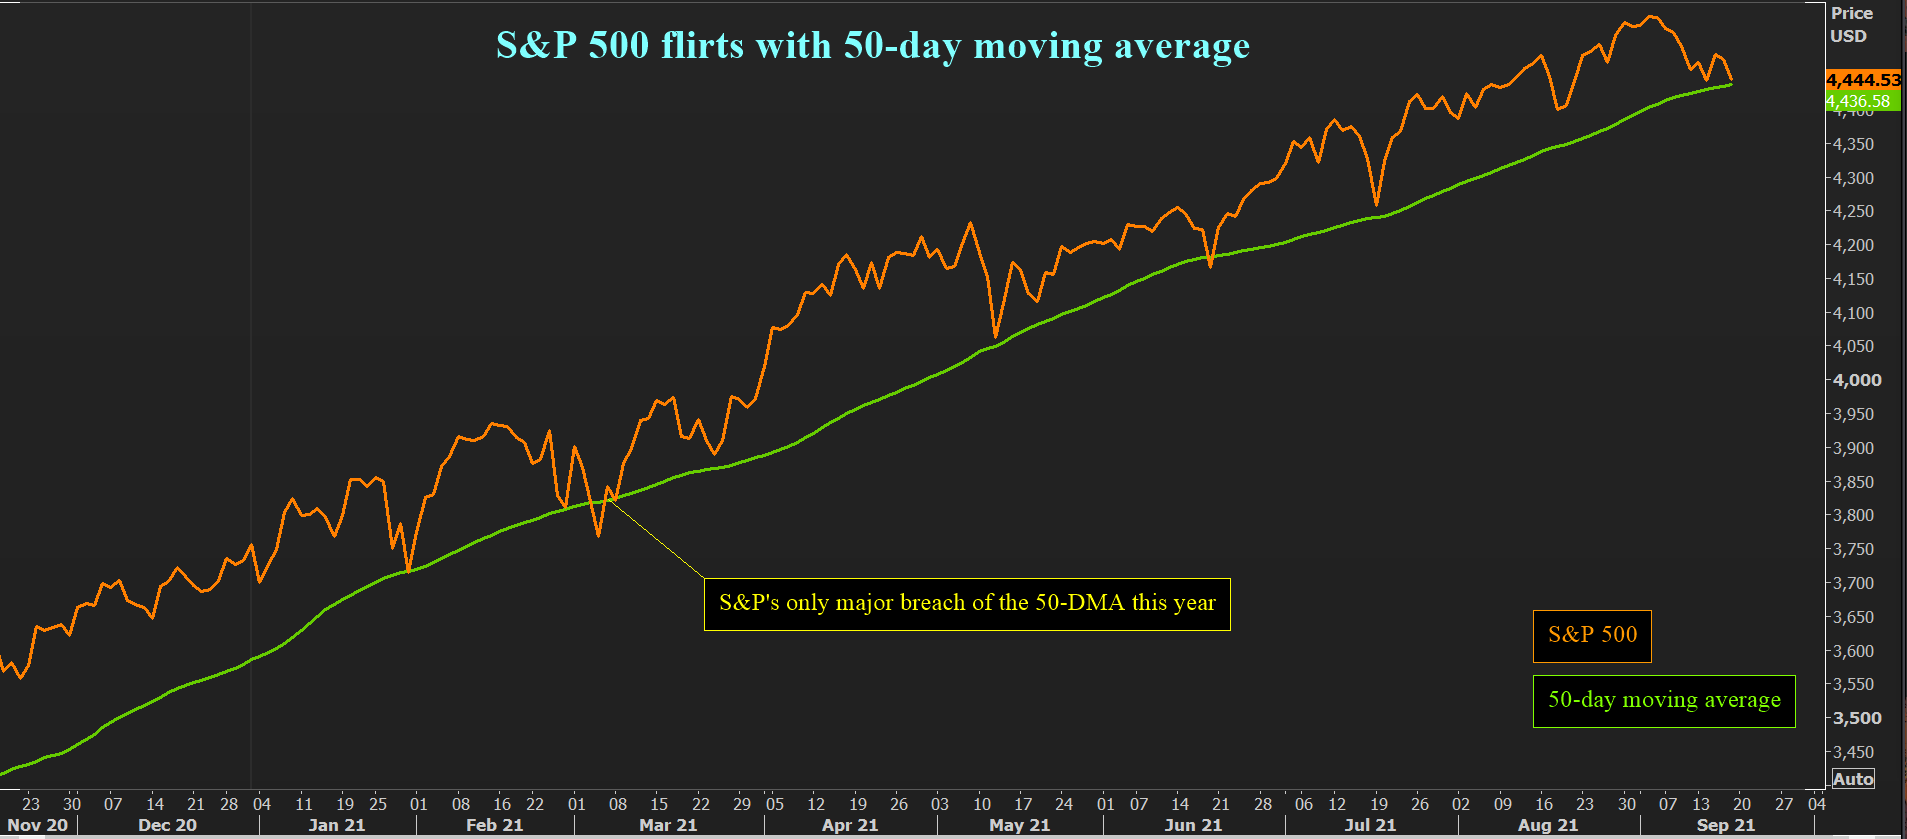 50-DMA tends to be a major support level for the index